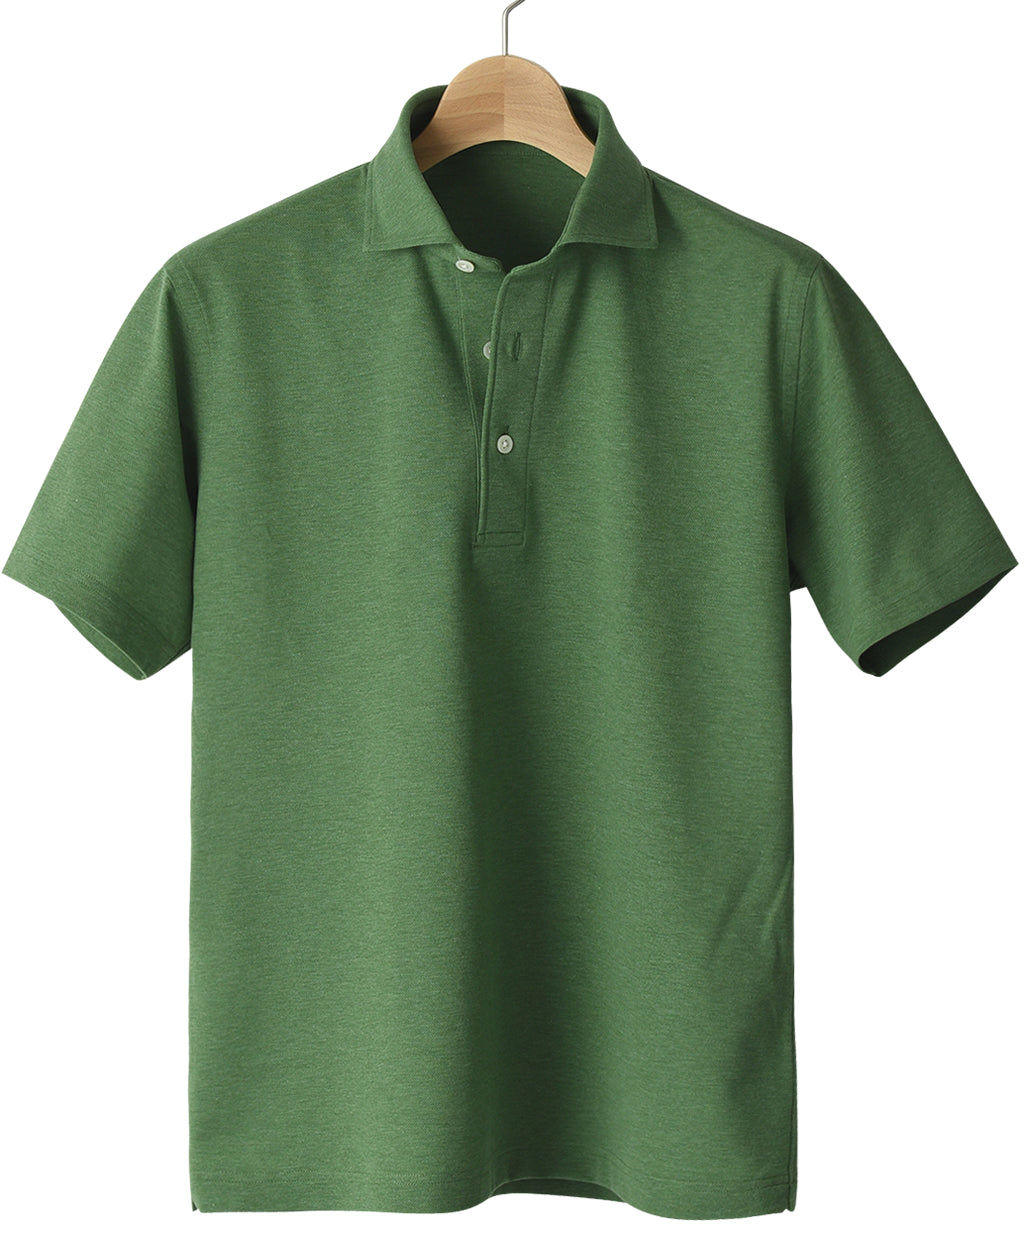 Green cotton and polyester polo shirt